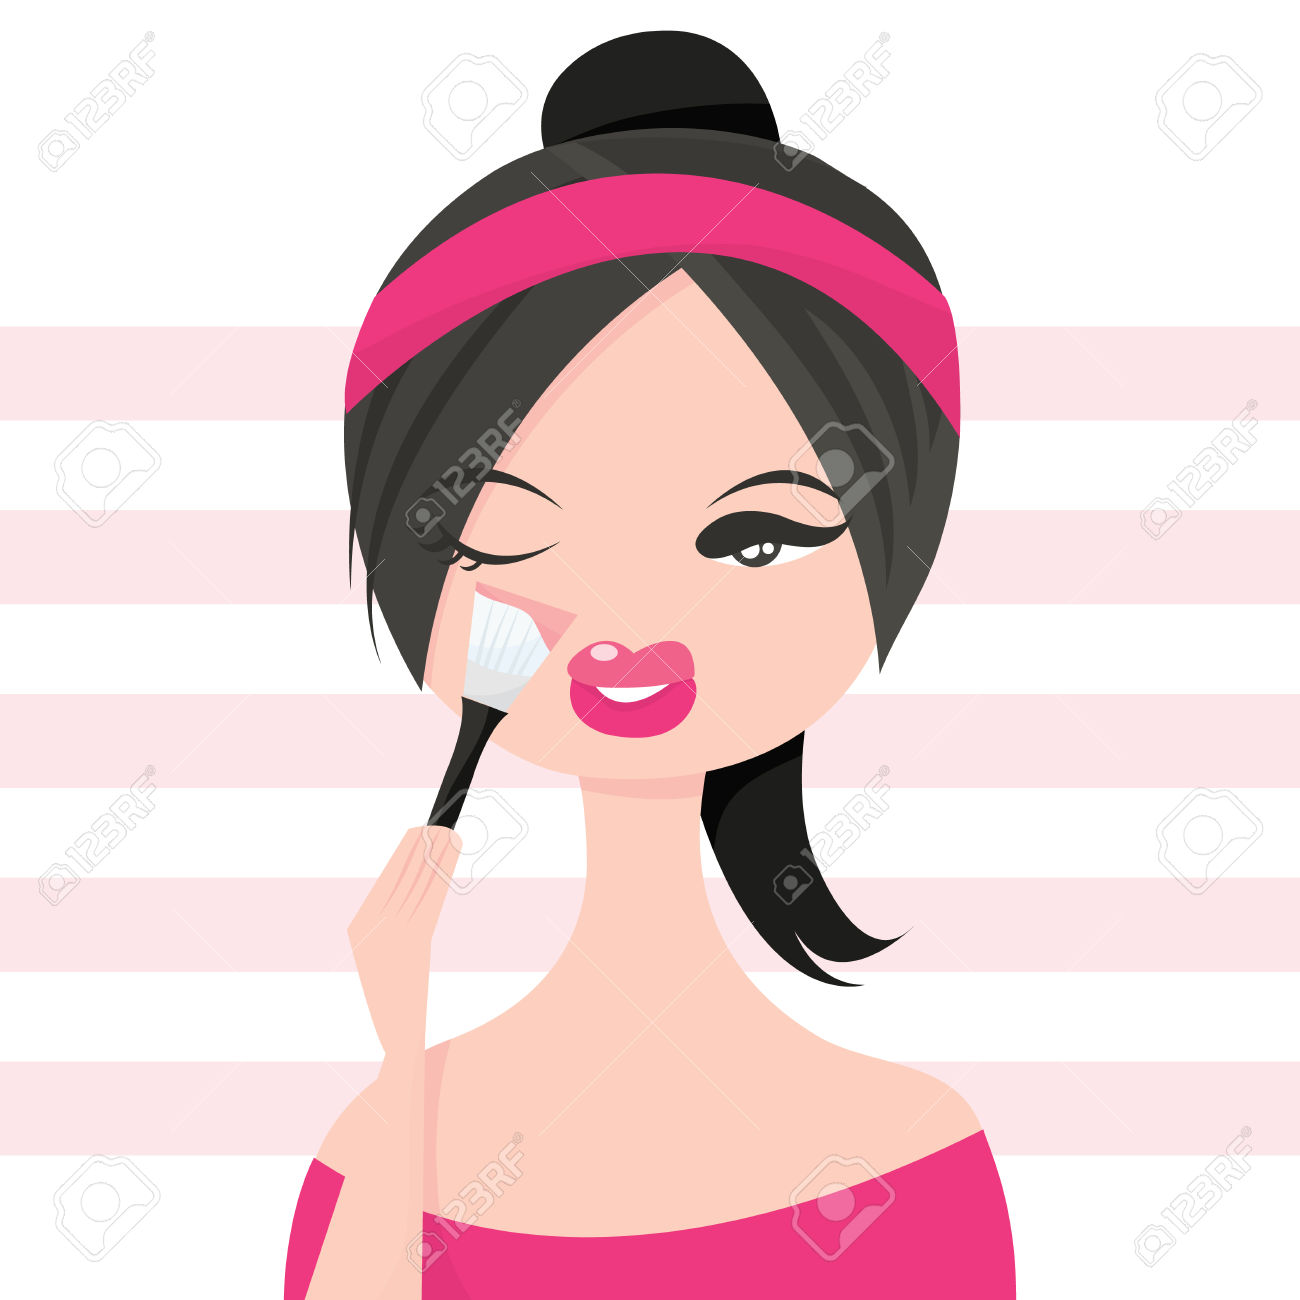 5,495 Make Up Girl Stock Vector Illustration And Royalty Free Make.